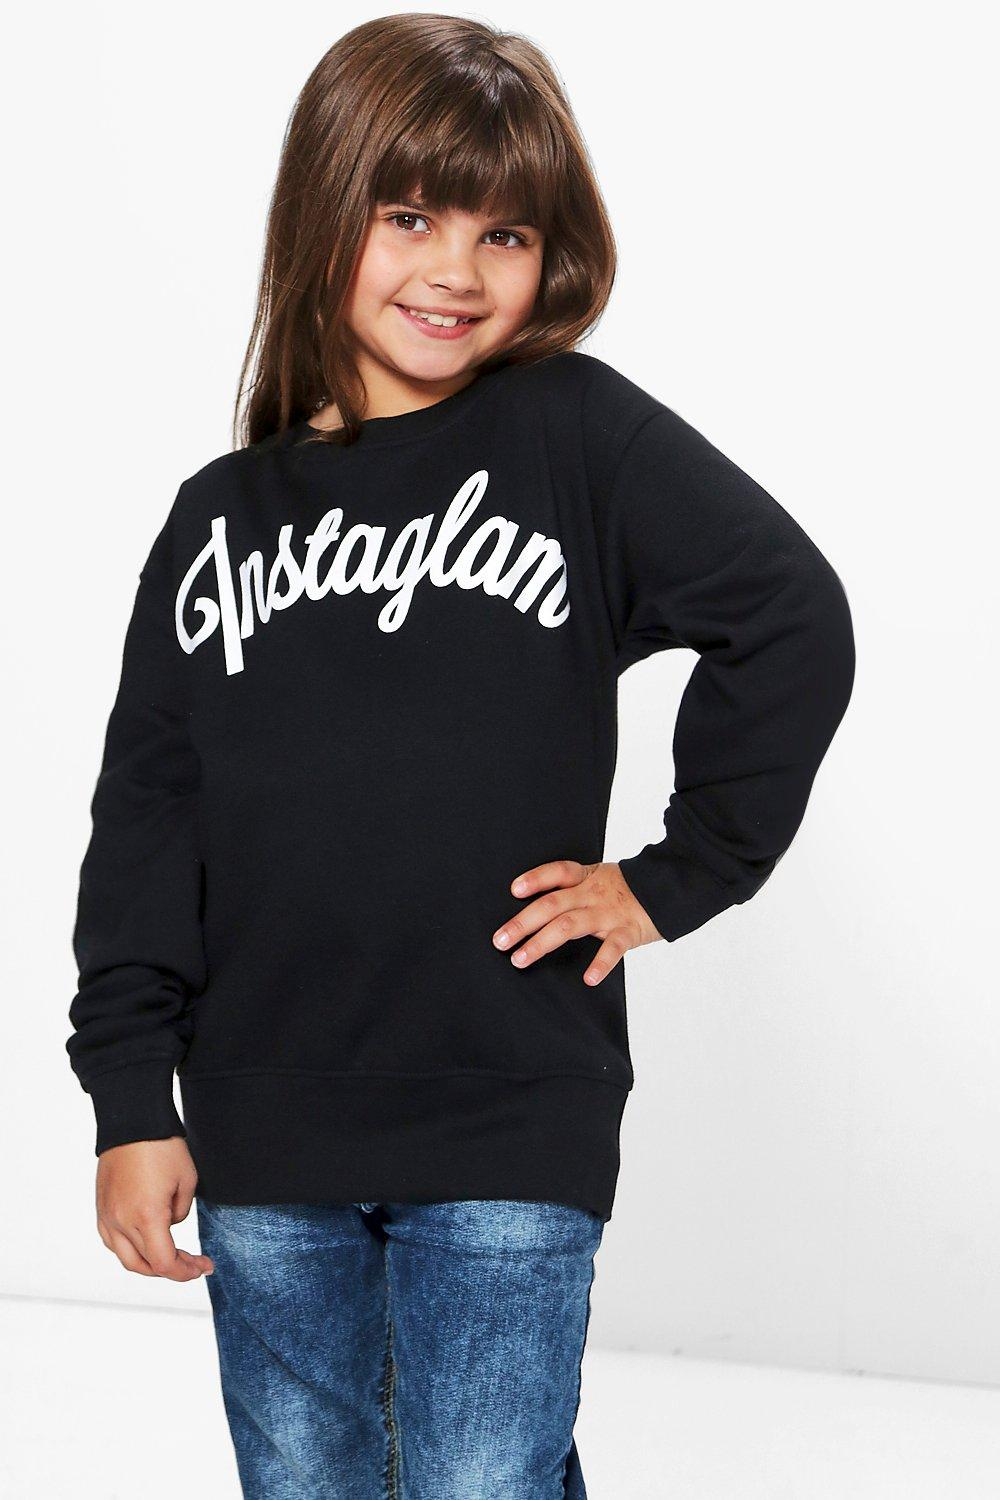 Girls Instaglam Sweat Top